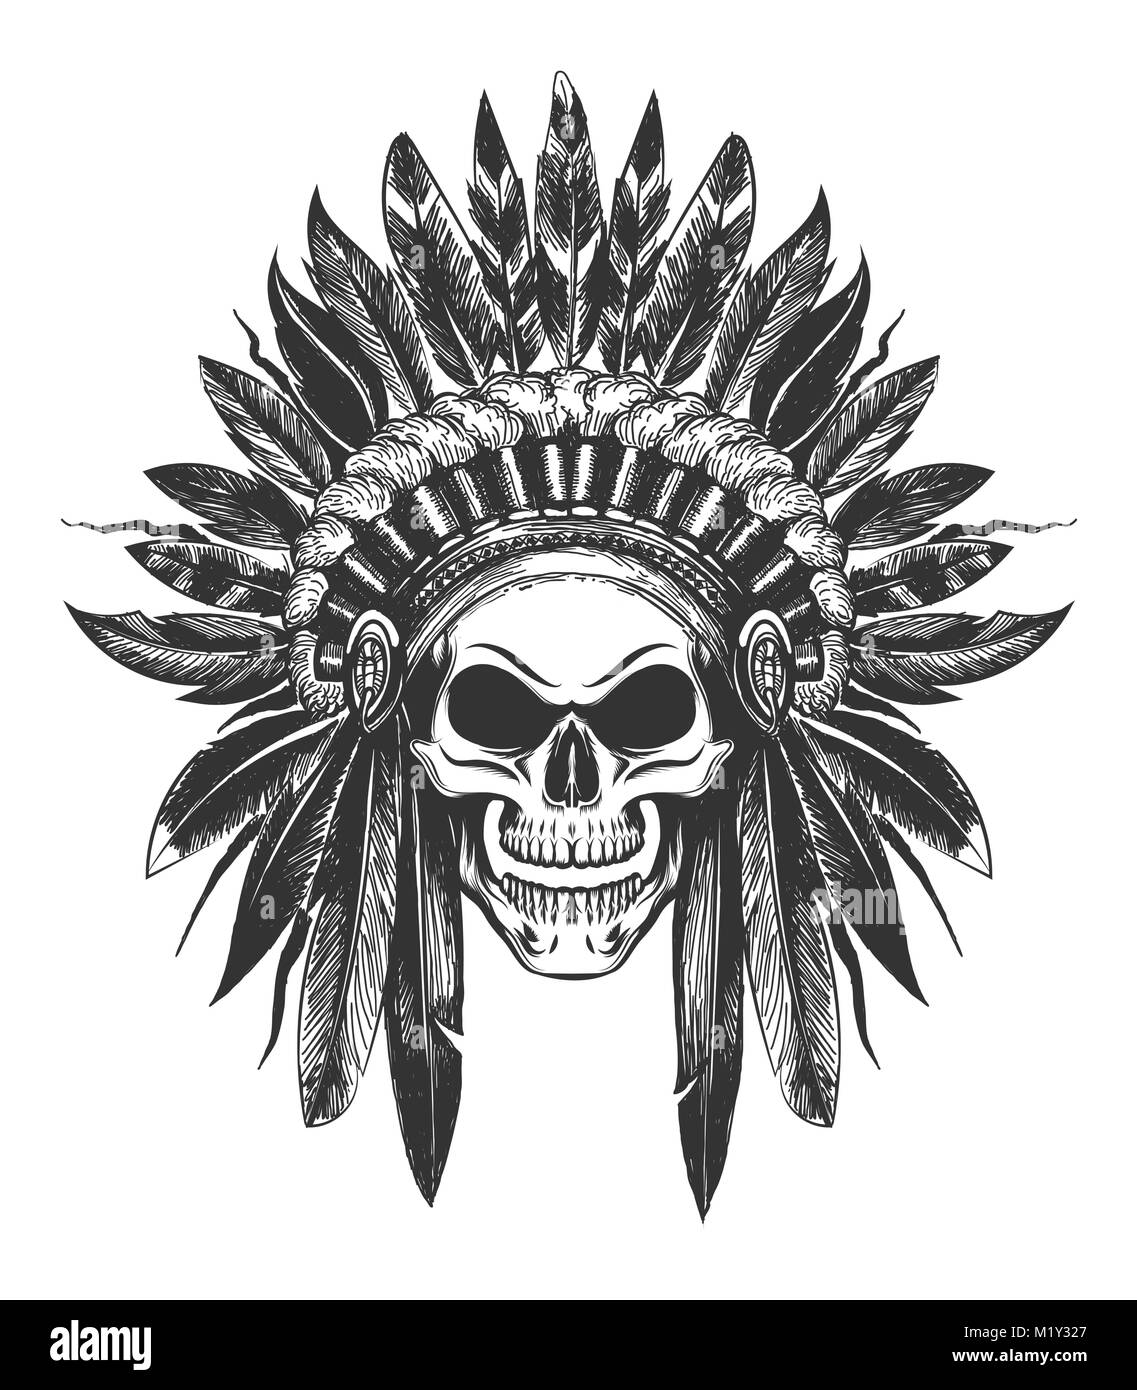 Apache indian war chief stock photos apache indian war chief human skull in native american indian war bonnet drawn in tattoo style vector illustration biocorpaavc